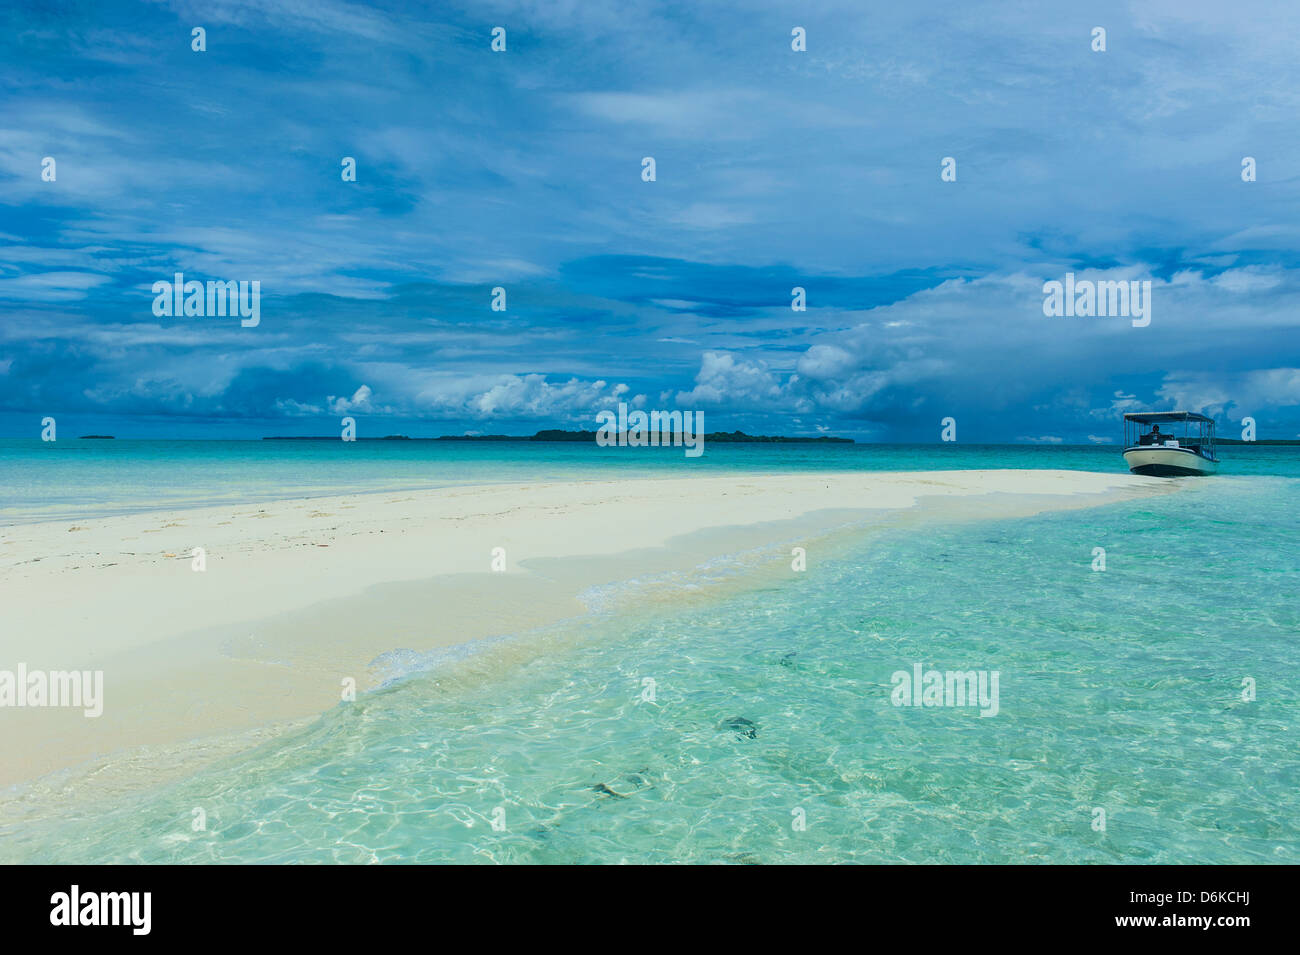 Rock island, Palau, Central Pacific, Pacific - Stock Image